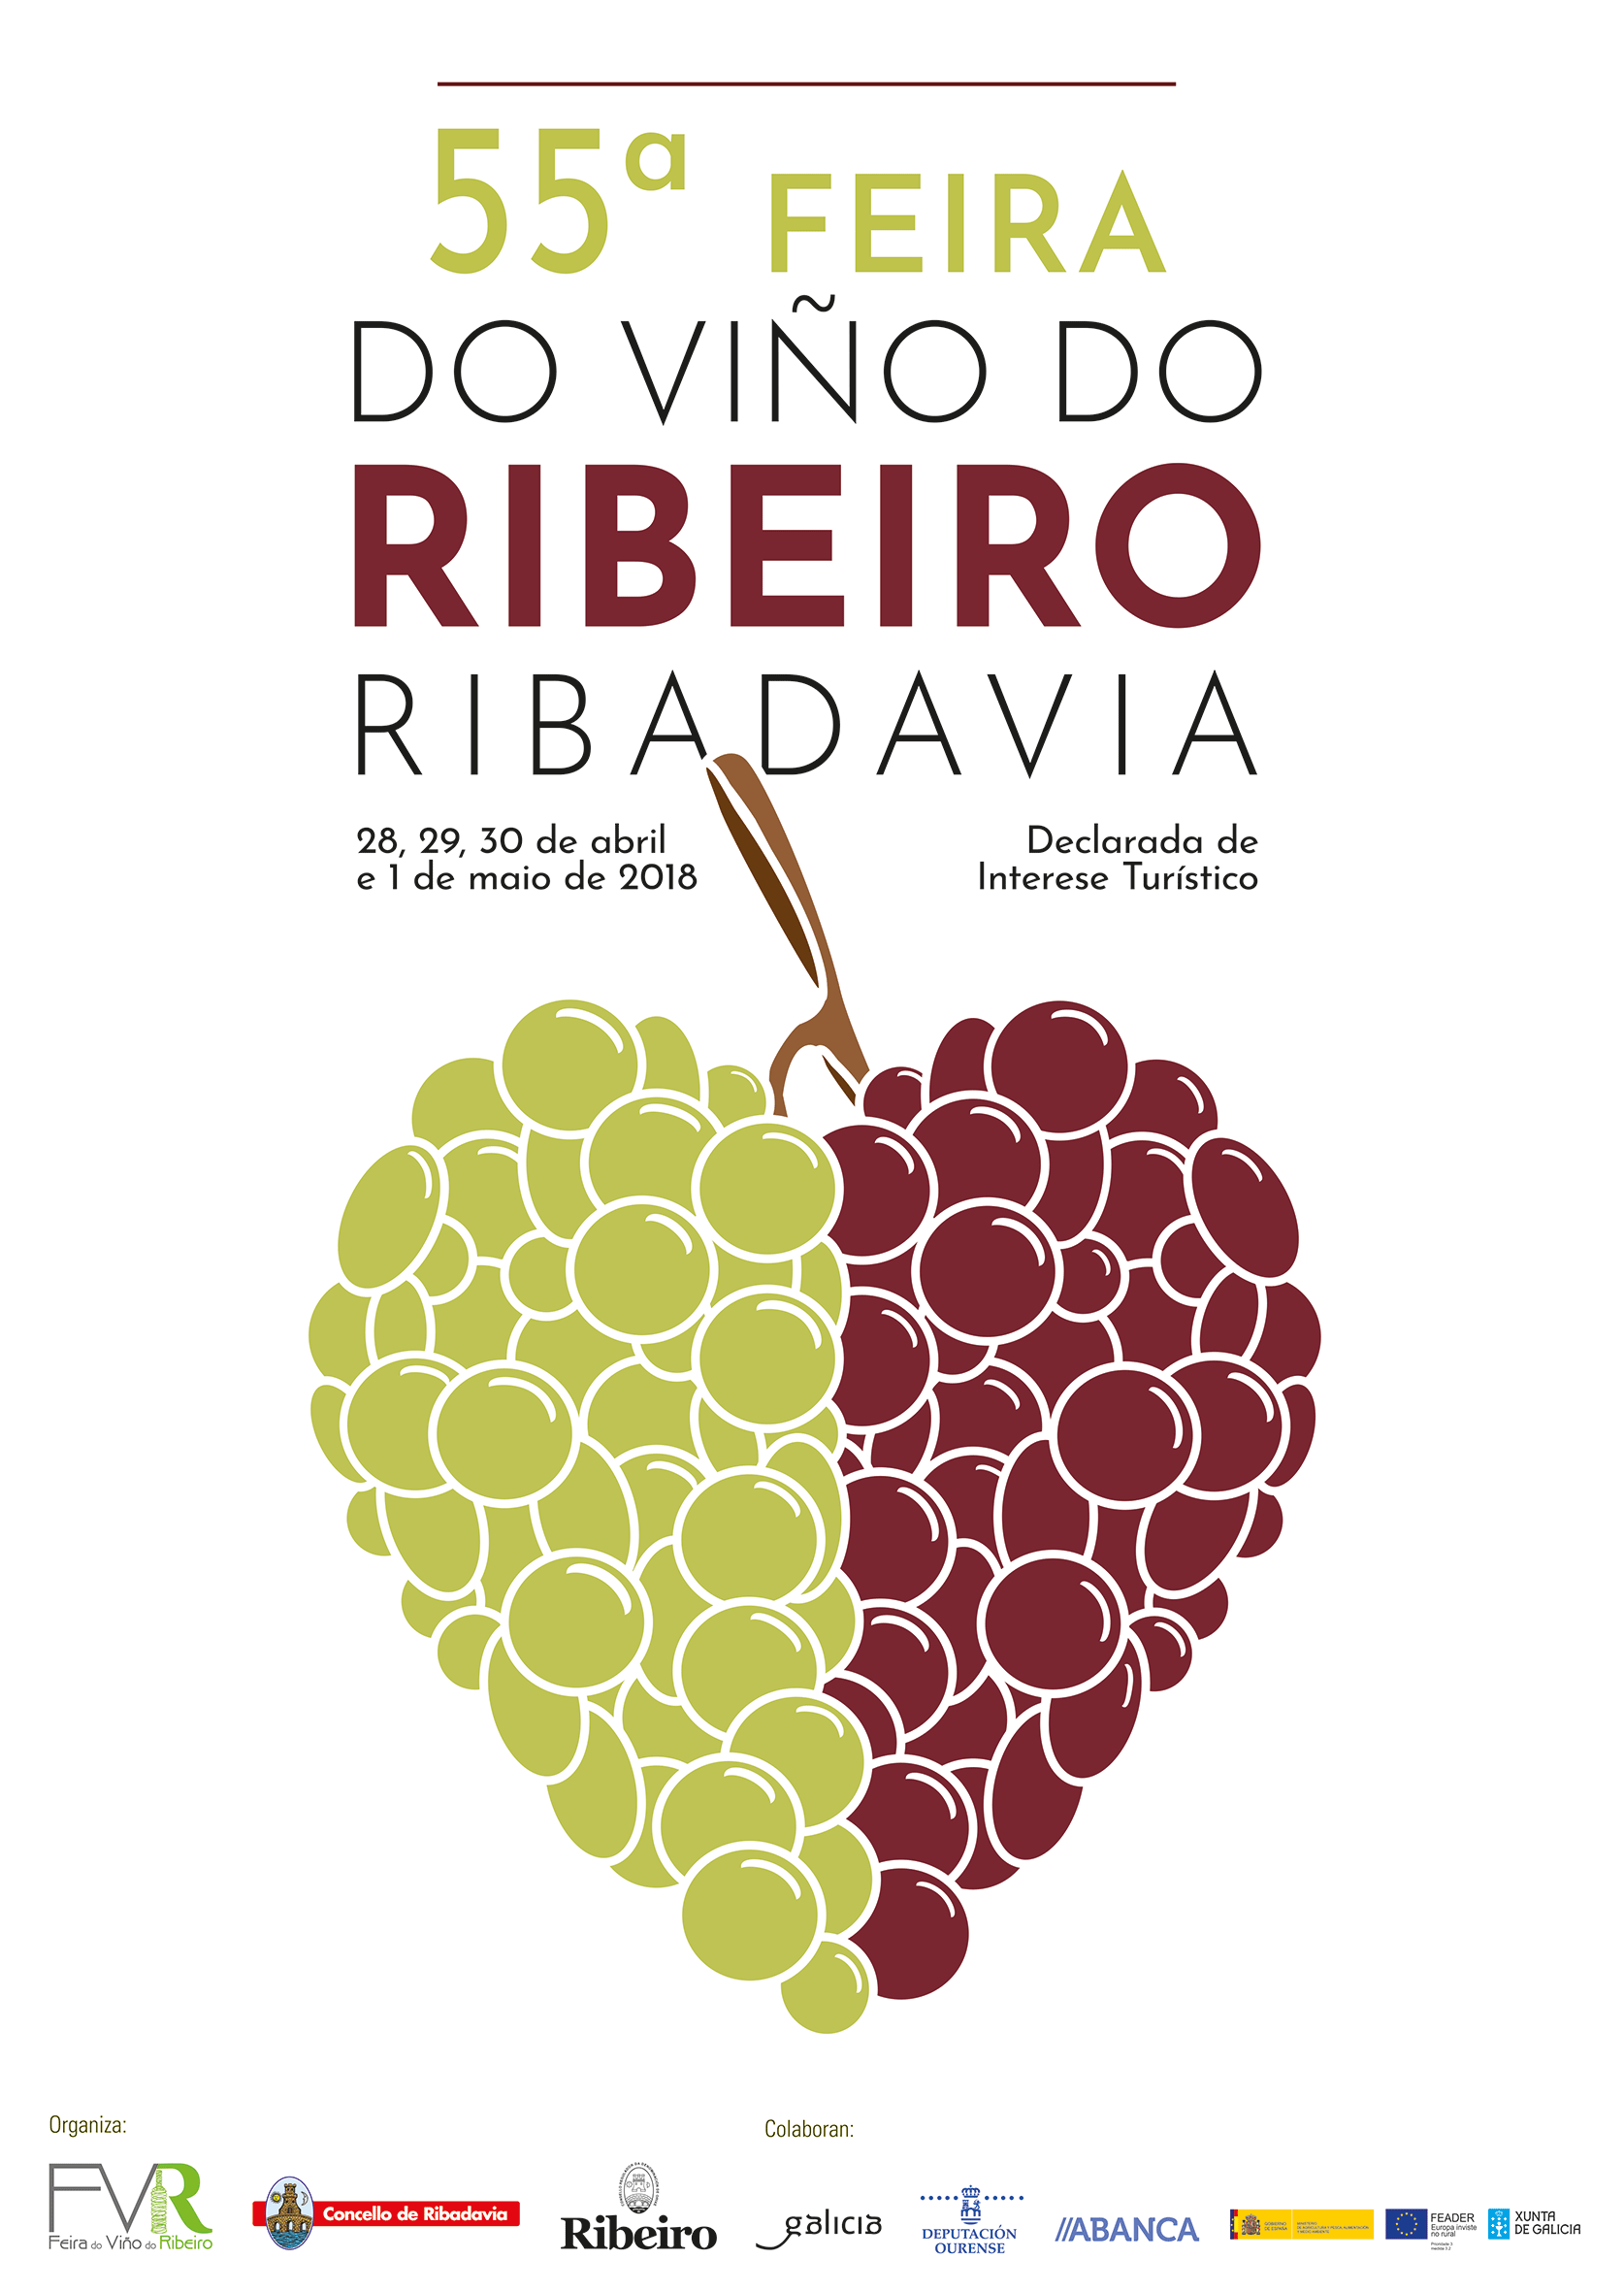 The Federation of Hospitality of Pontevedra promotes the promotion of the Ribeiro Wine Fair